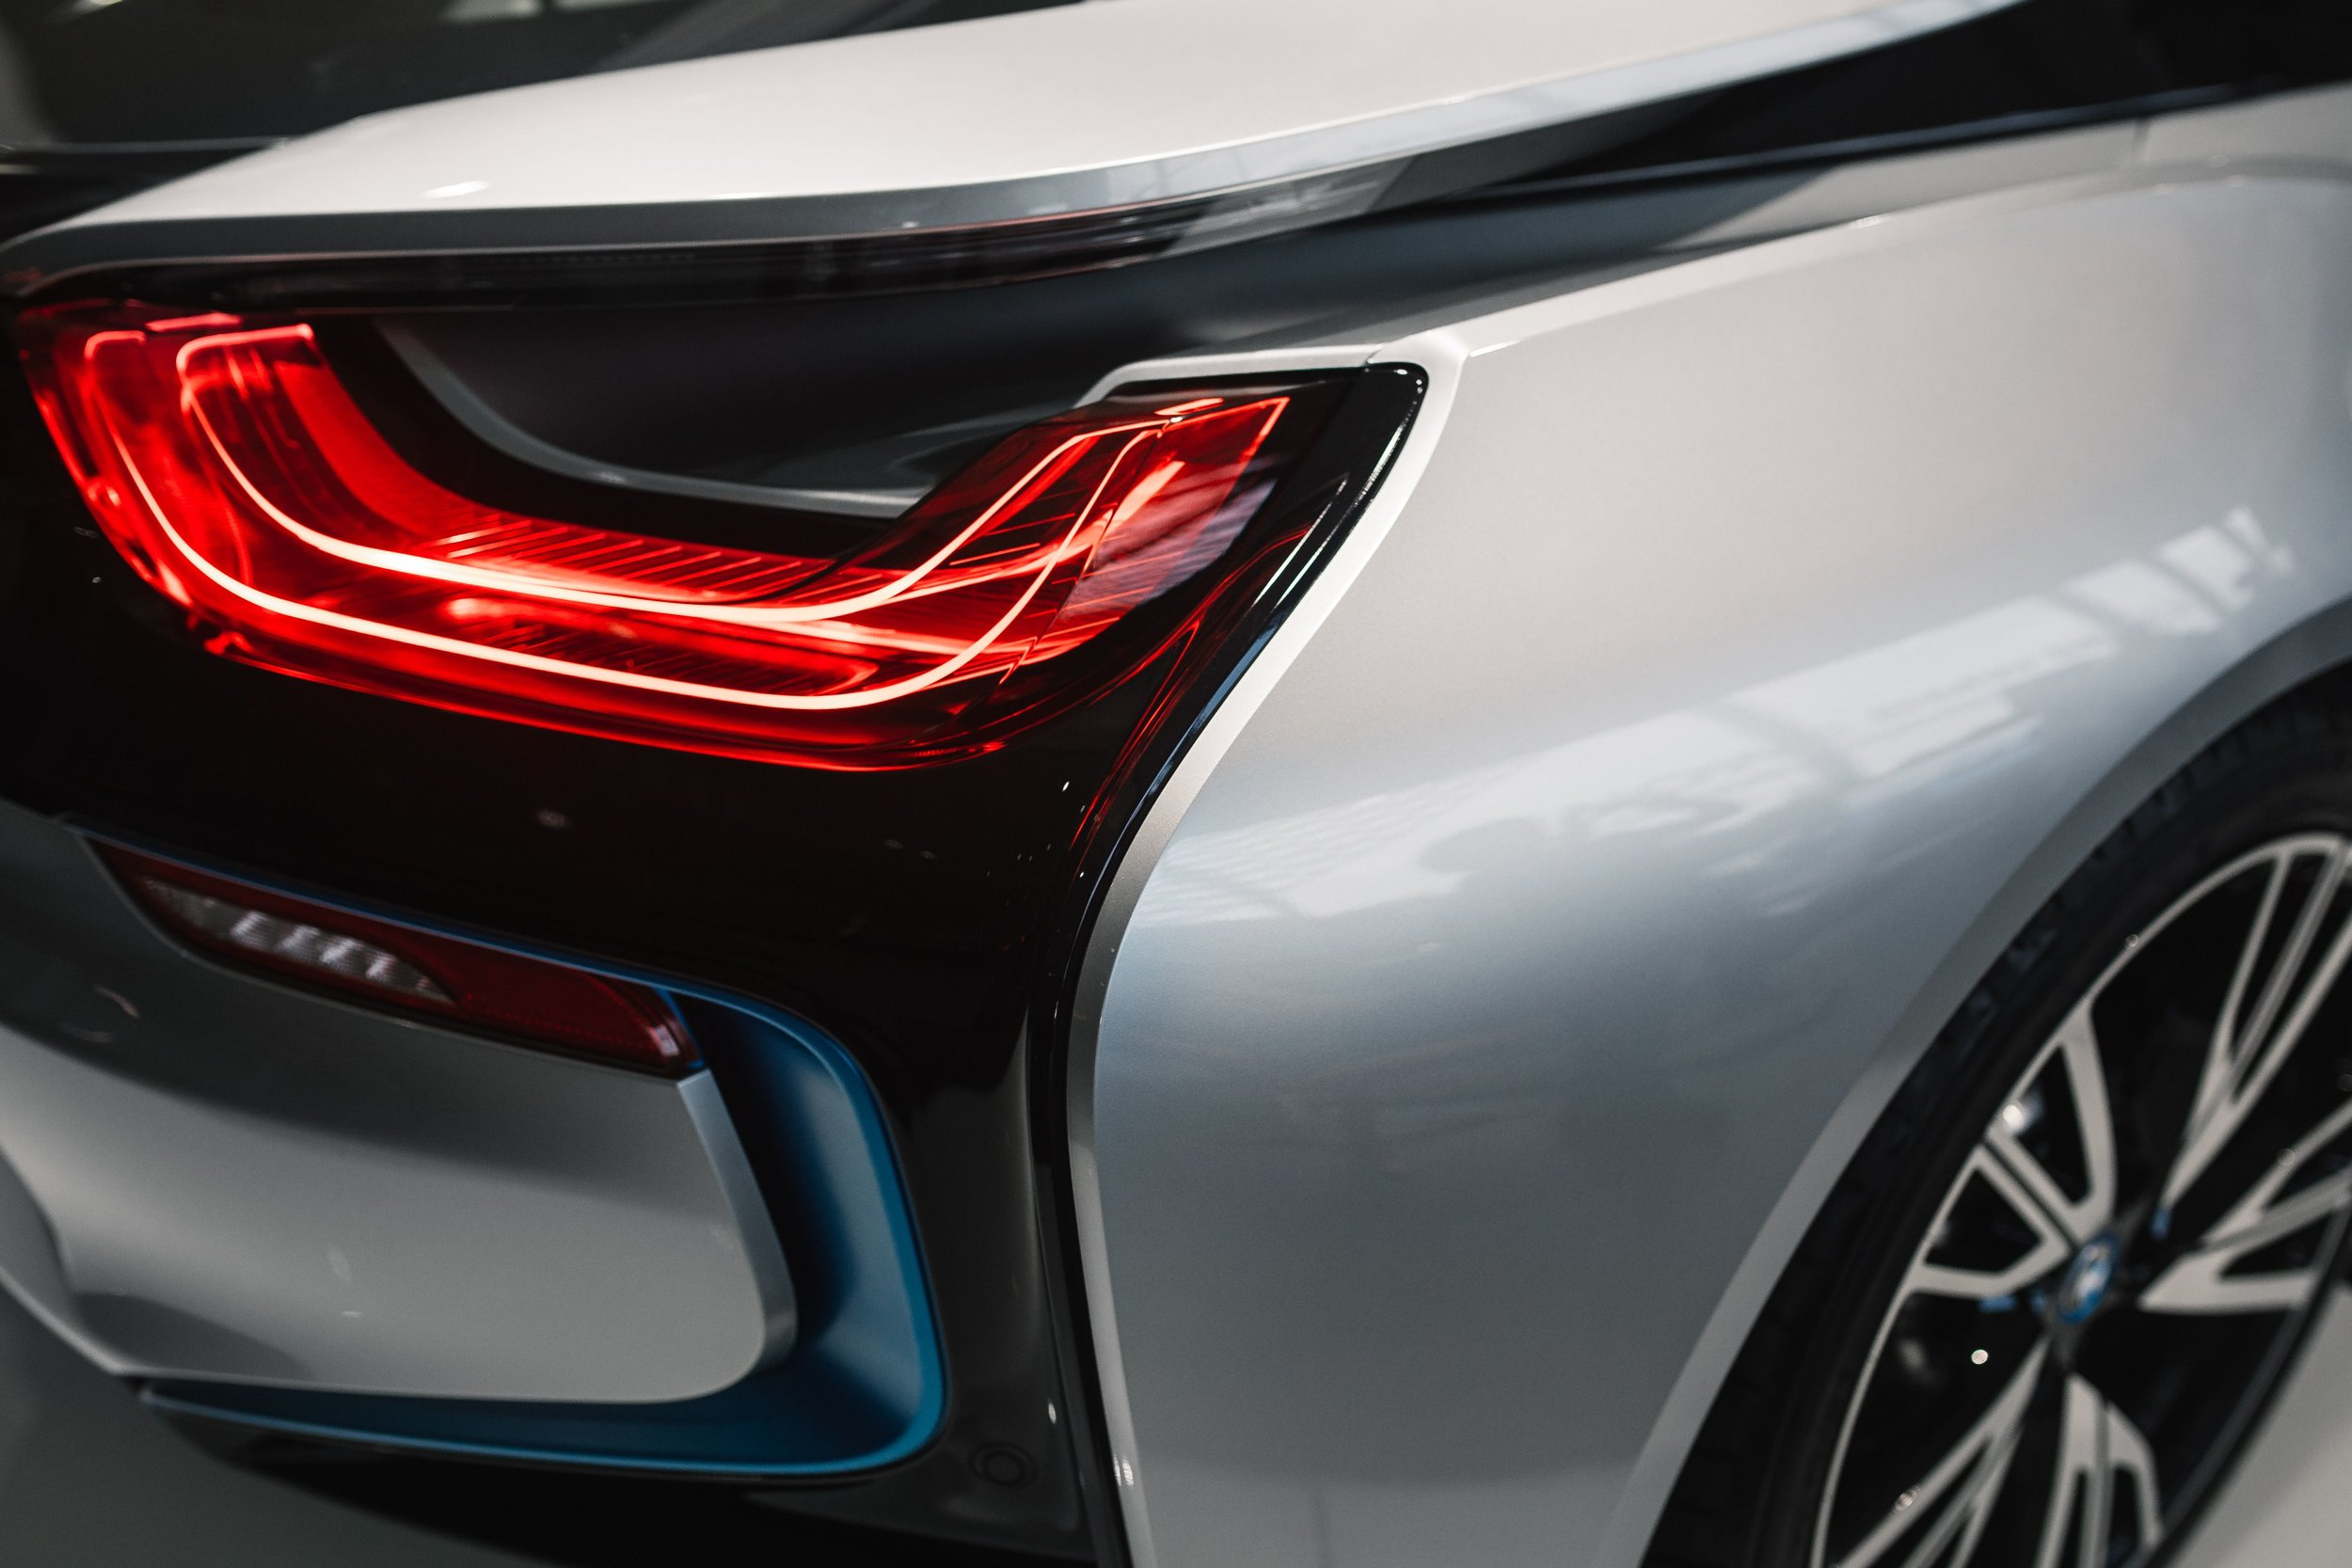 kaboompics_Breaklight of the car BMW i8.jpg